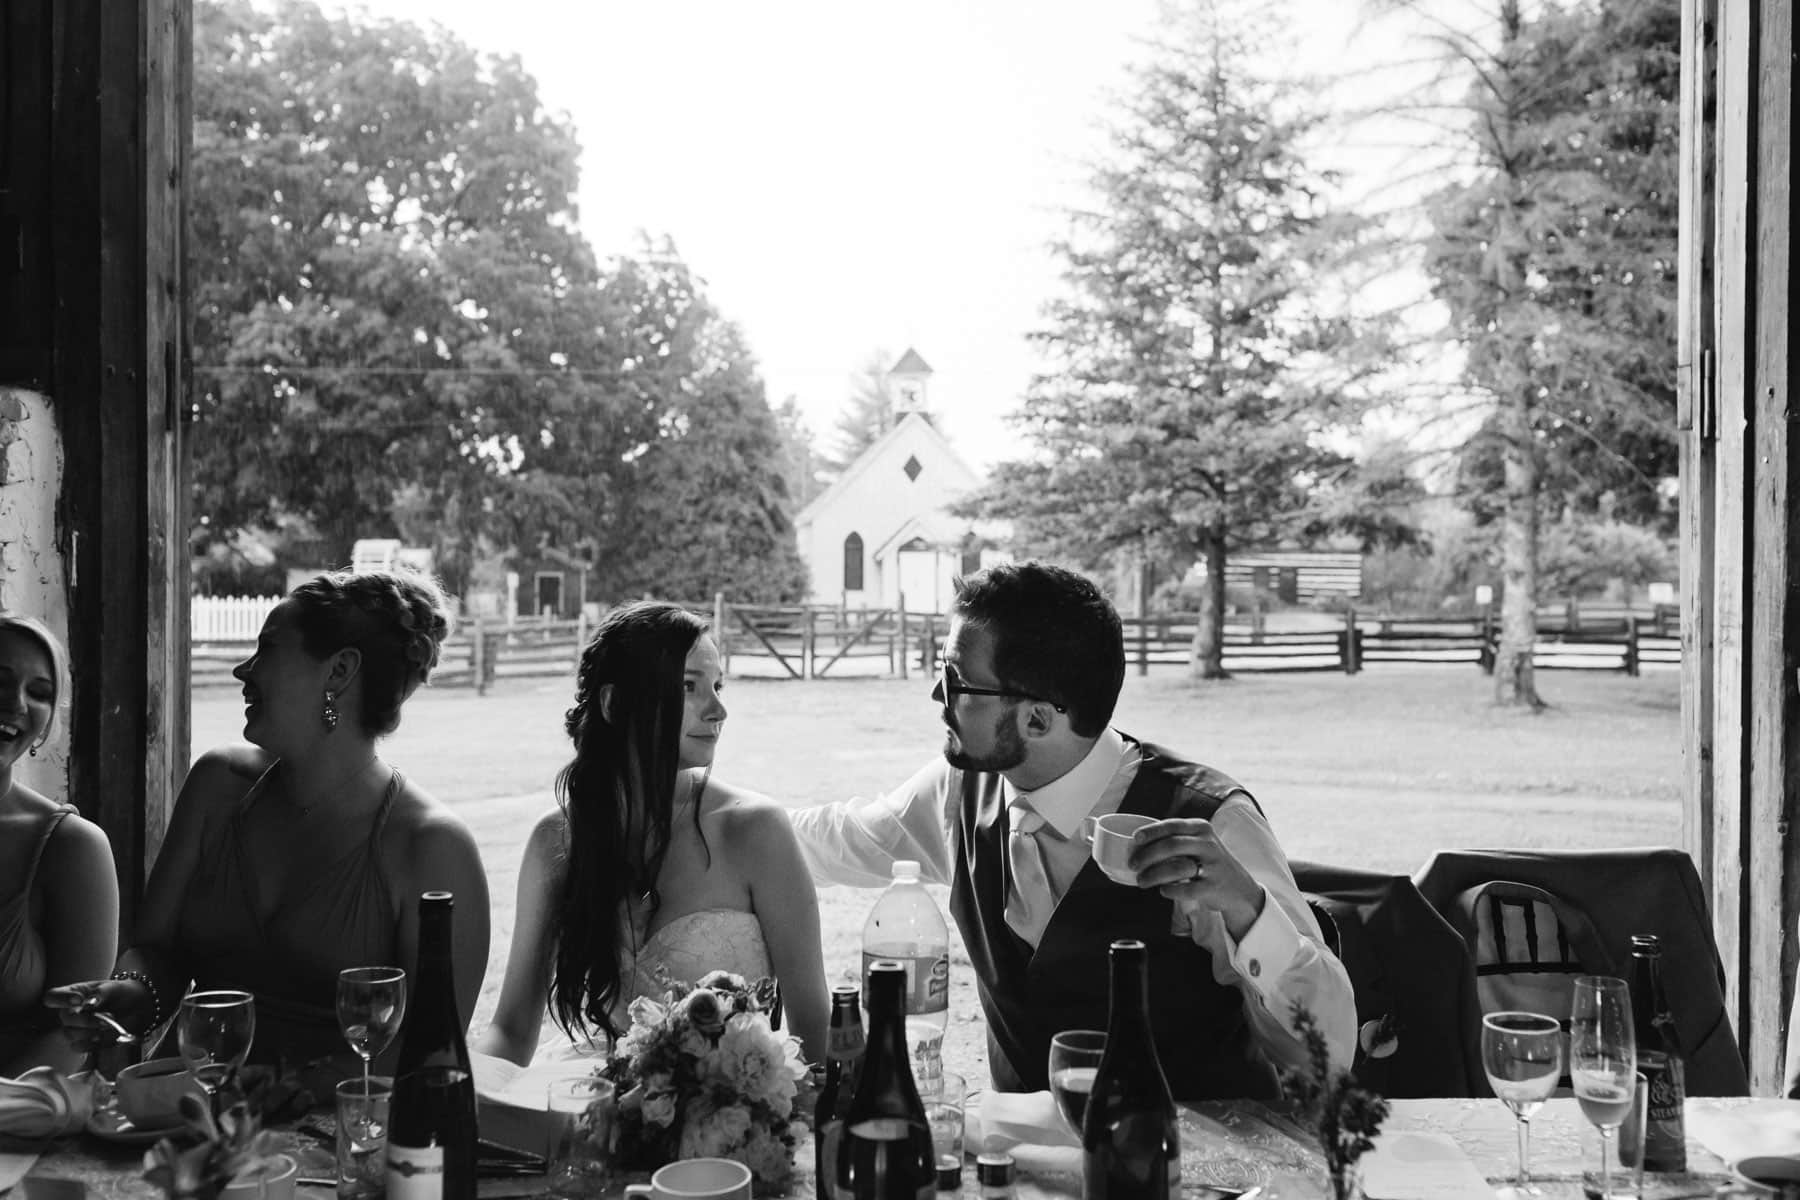 The bride and groom talk to one another at the dinner table with a white chapel in the distance at this Ball's Falls, Ontario wedding.